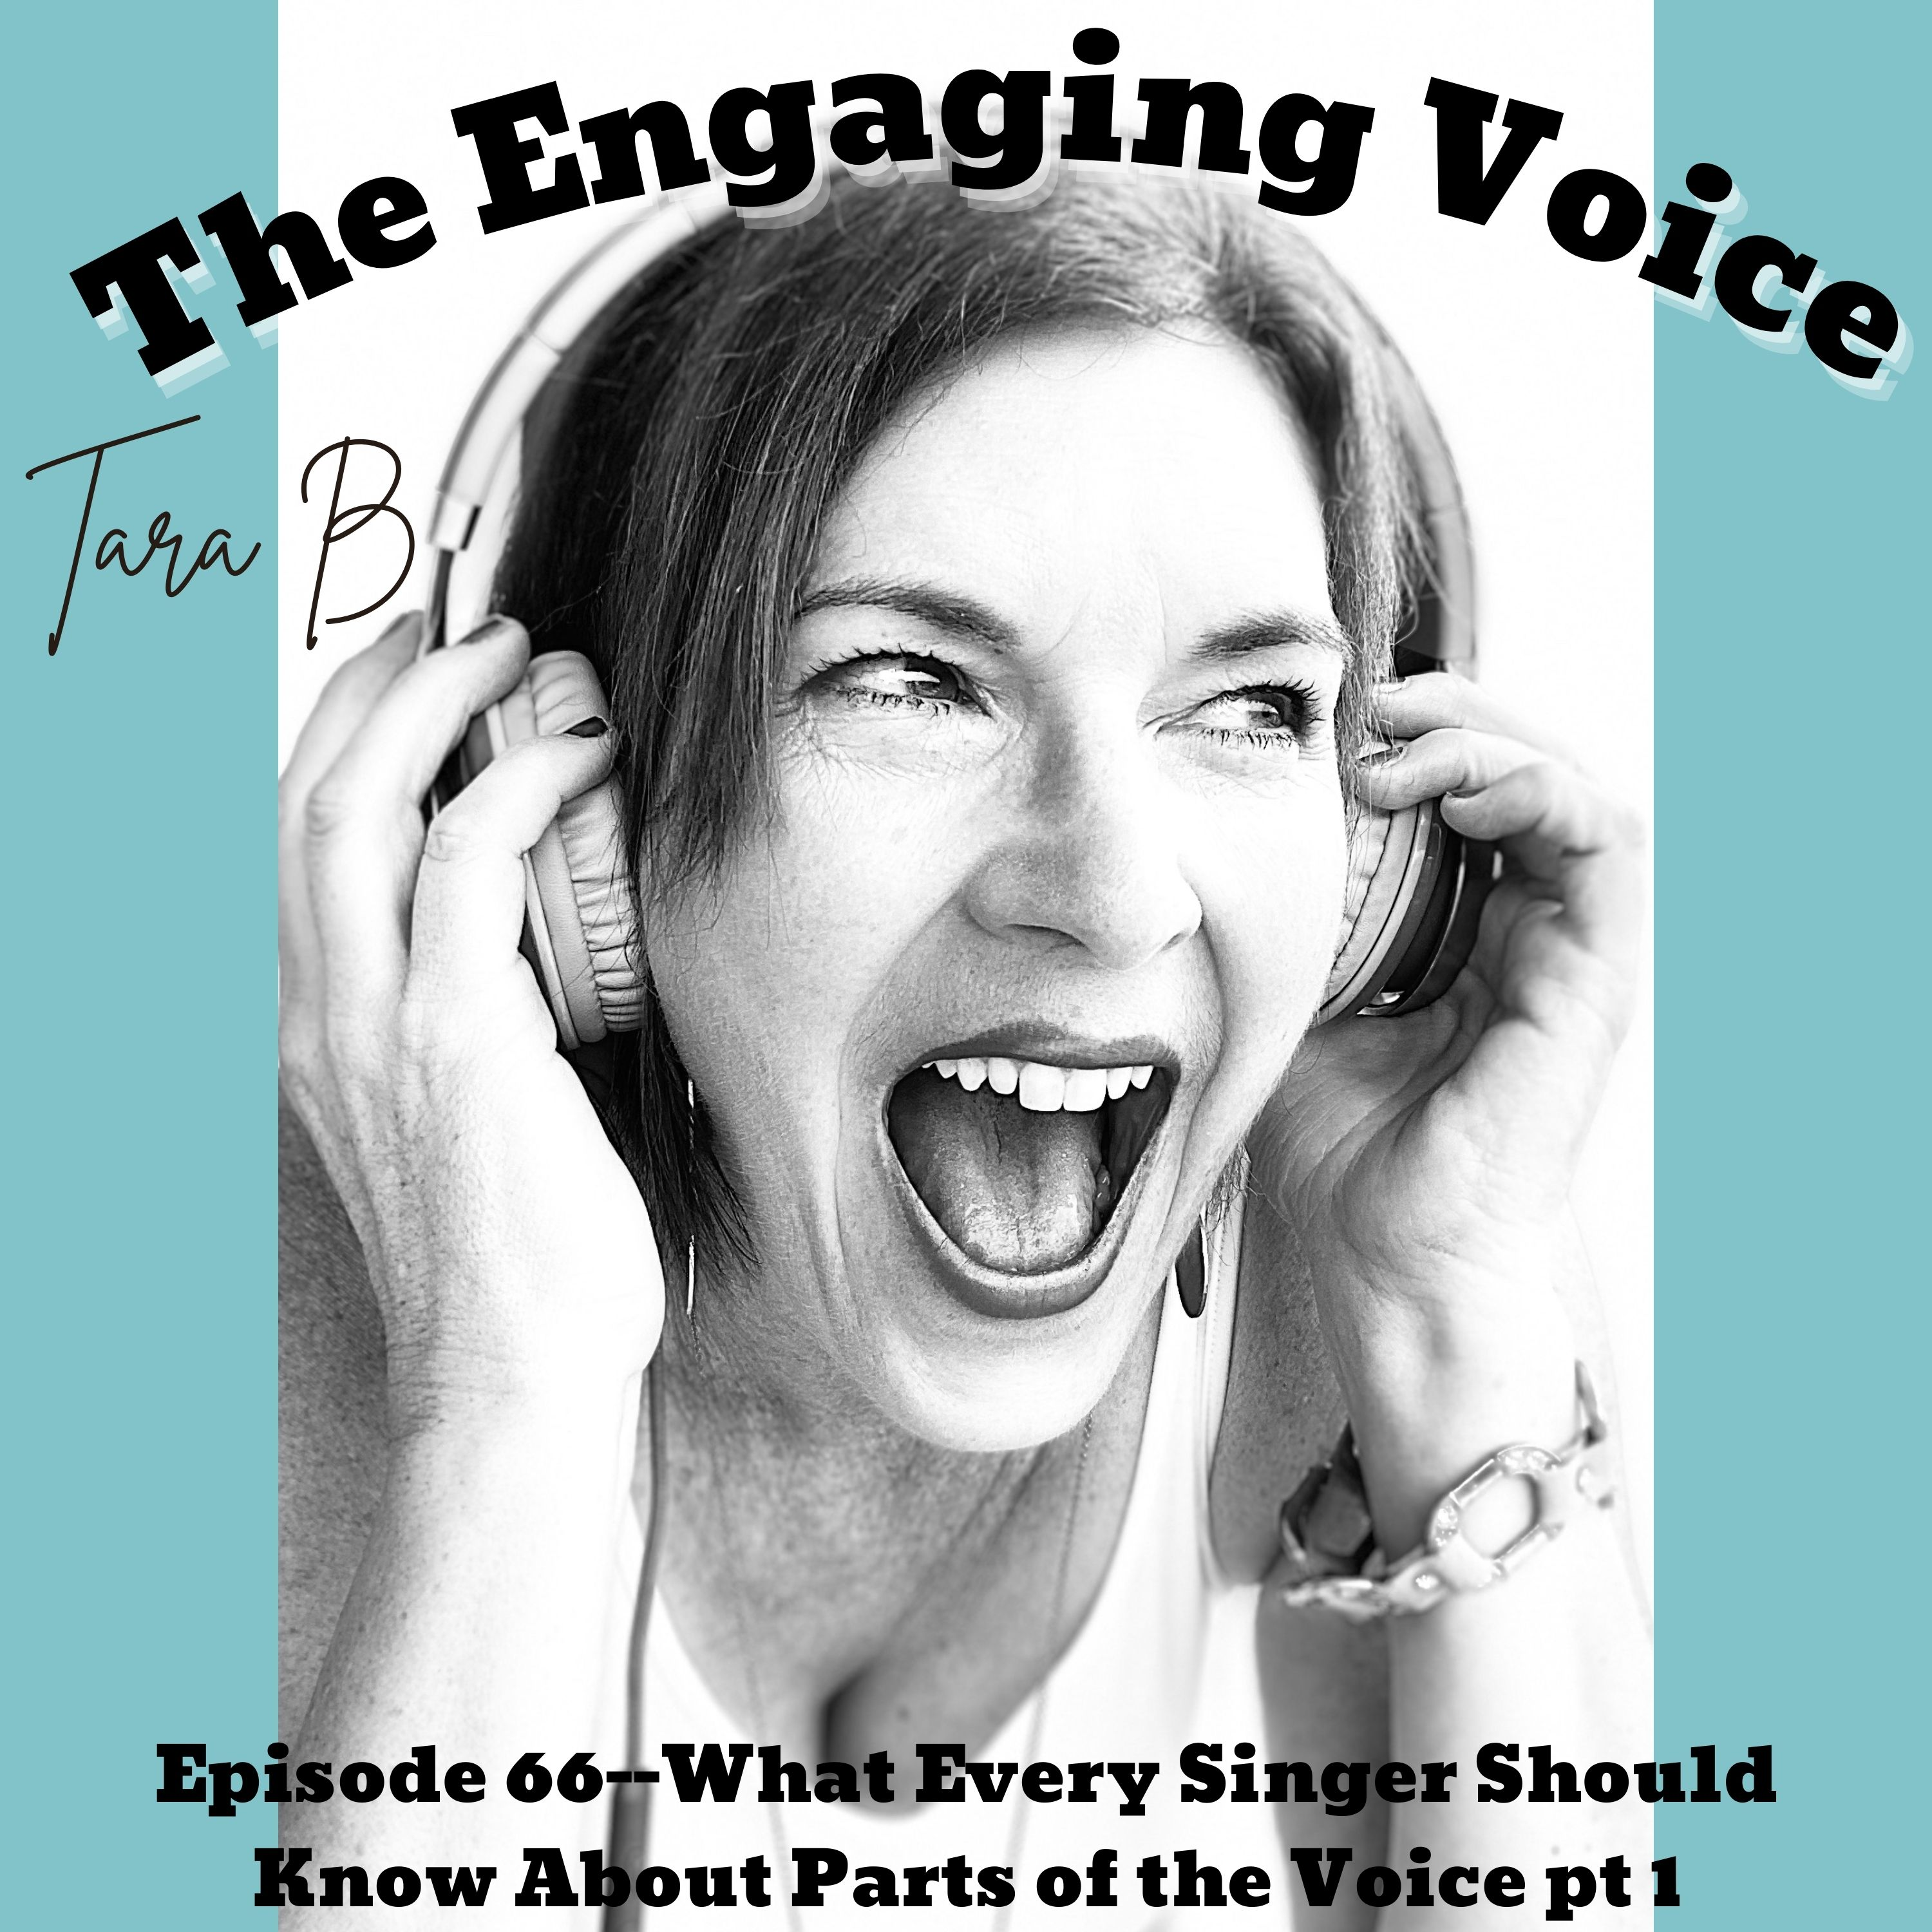 Tara B   What Every Singer Should Know About Parts of the Voice pt 1